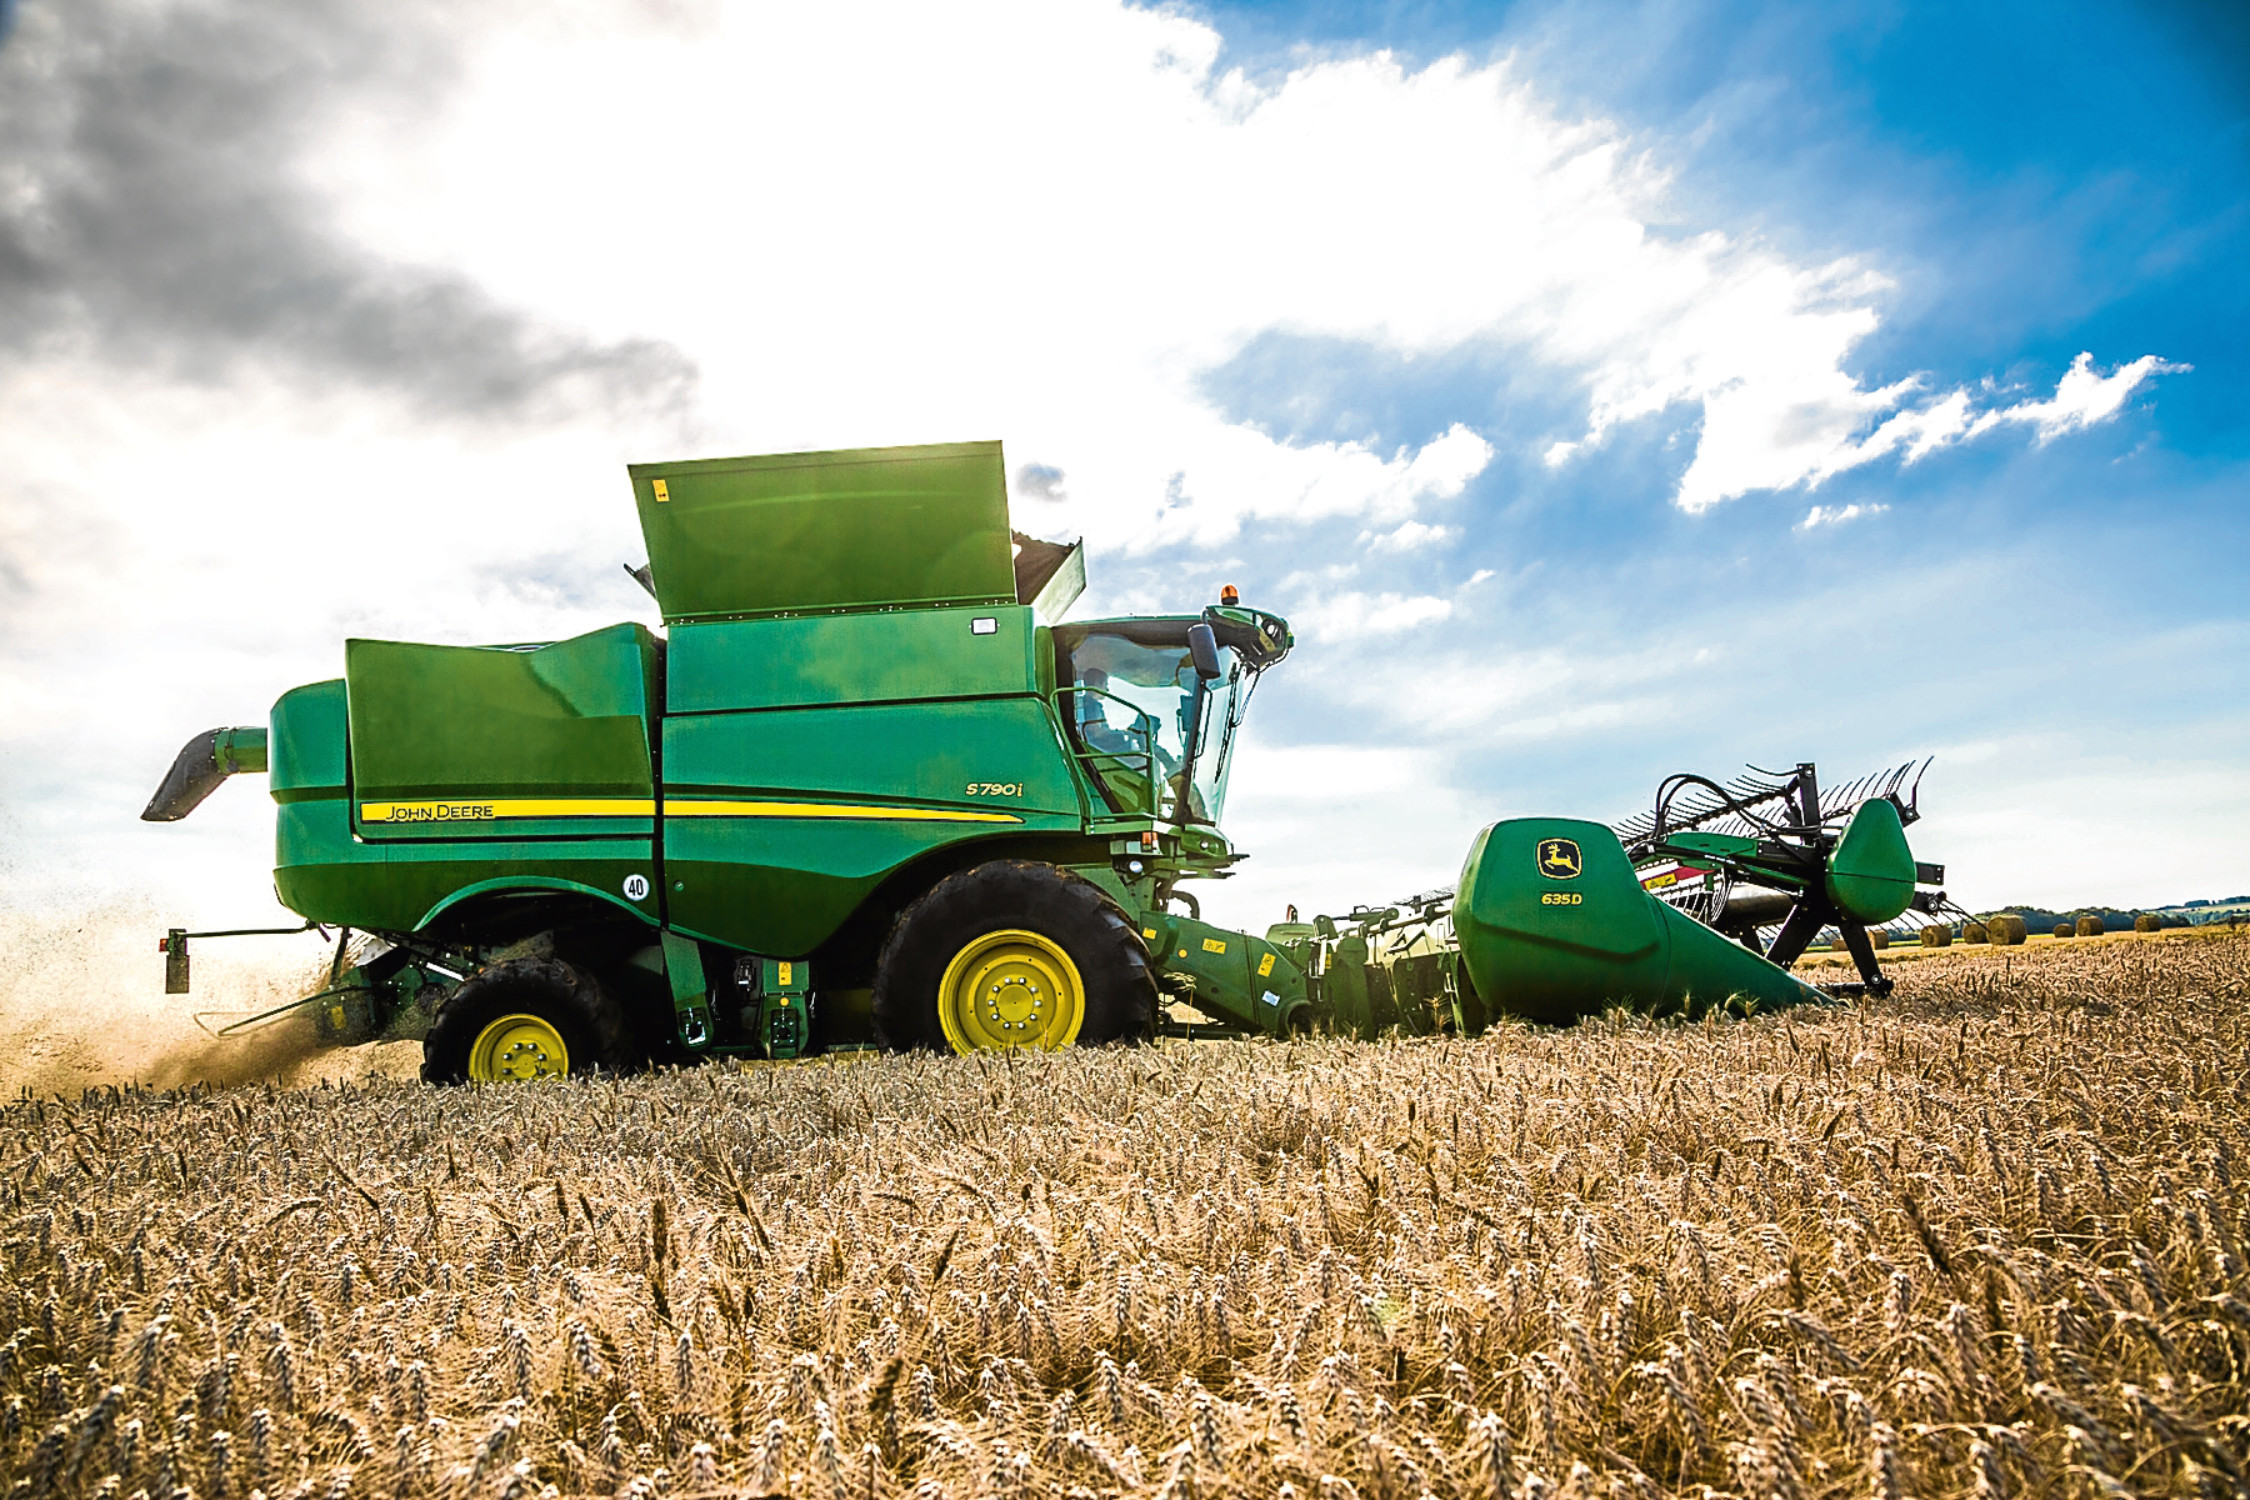 The new John Deere S790 combine with 635D header